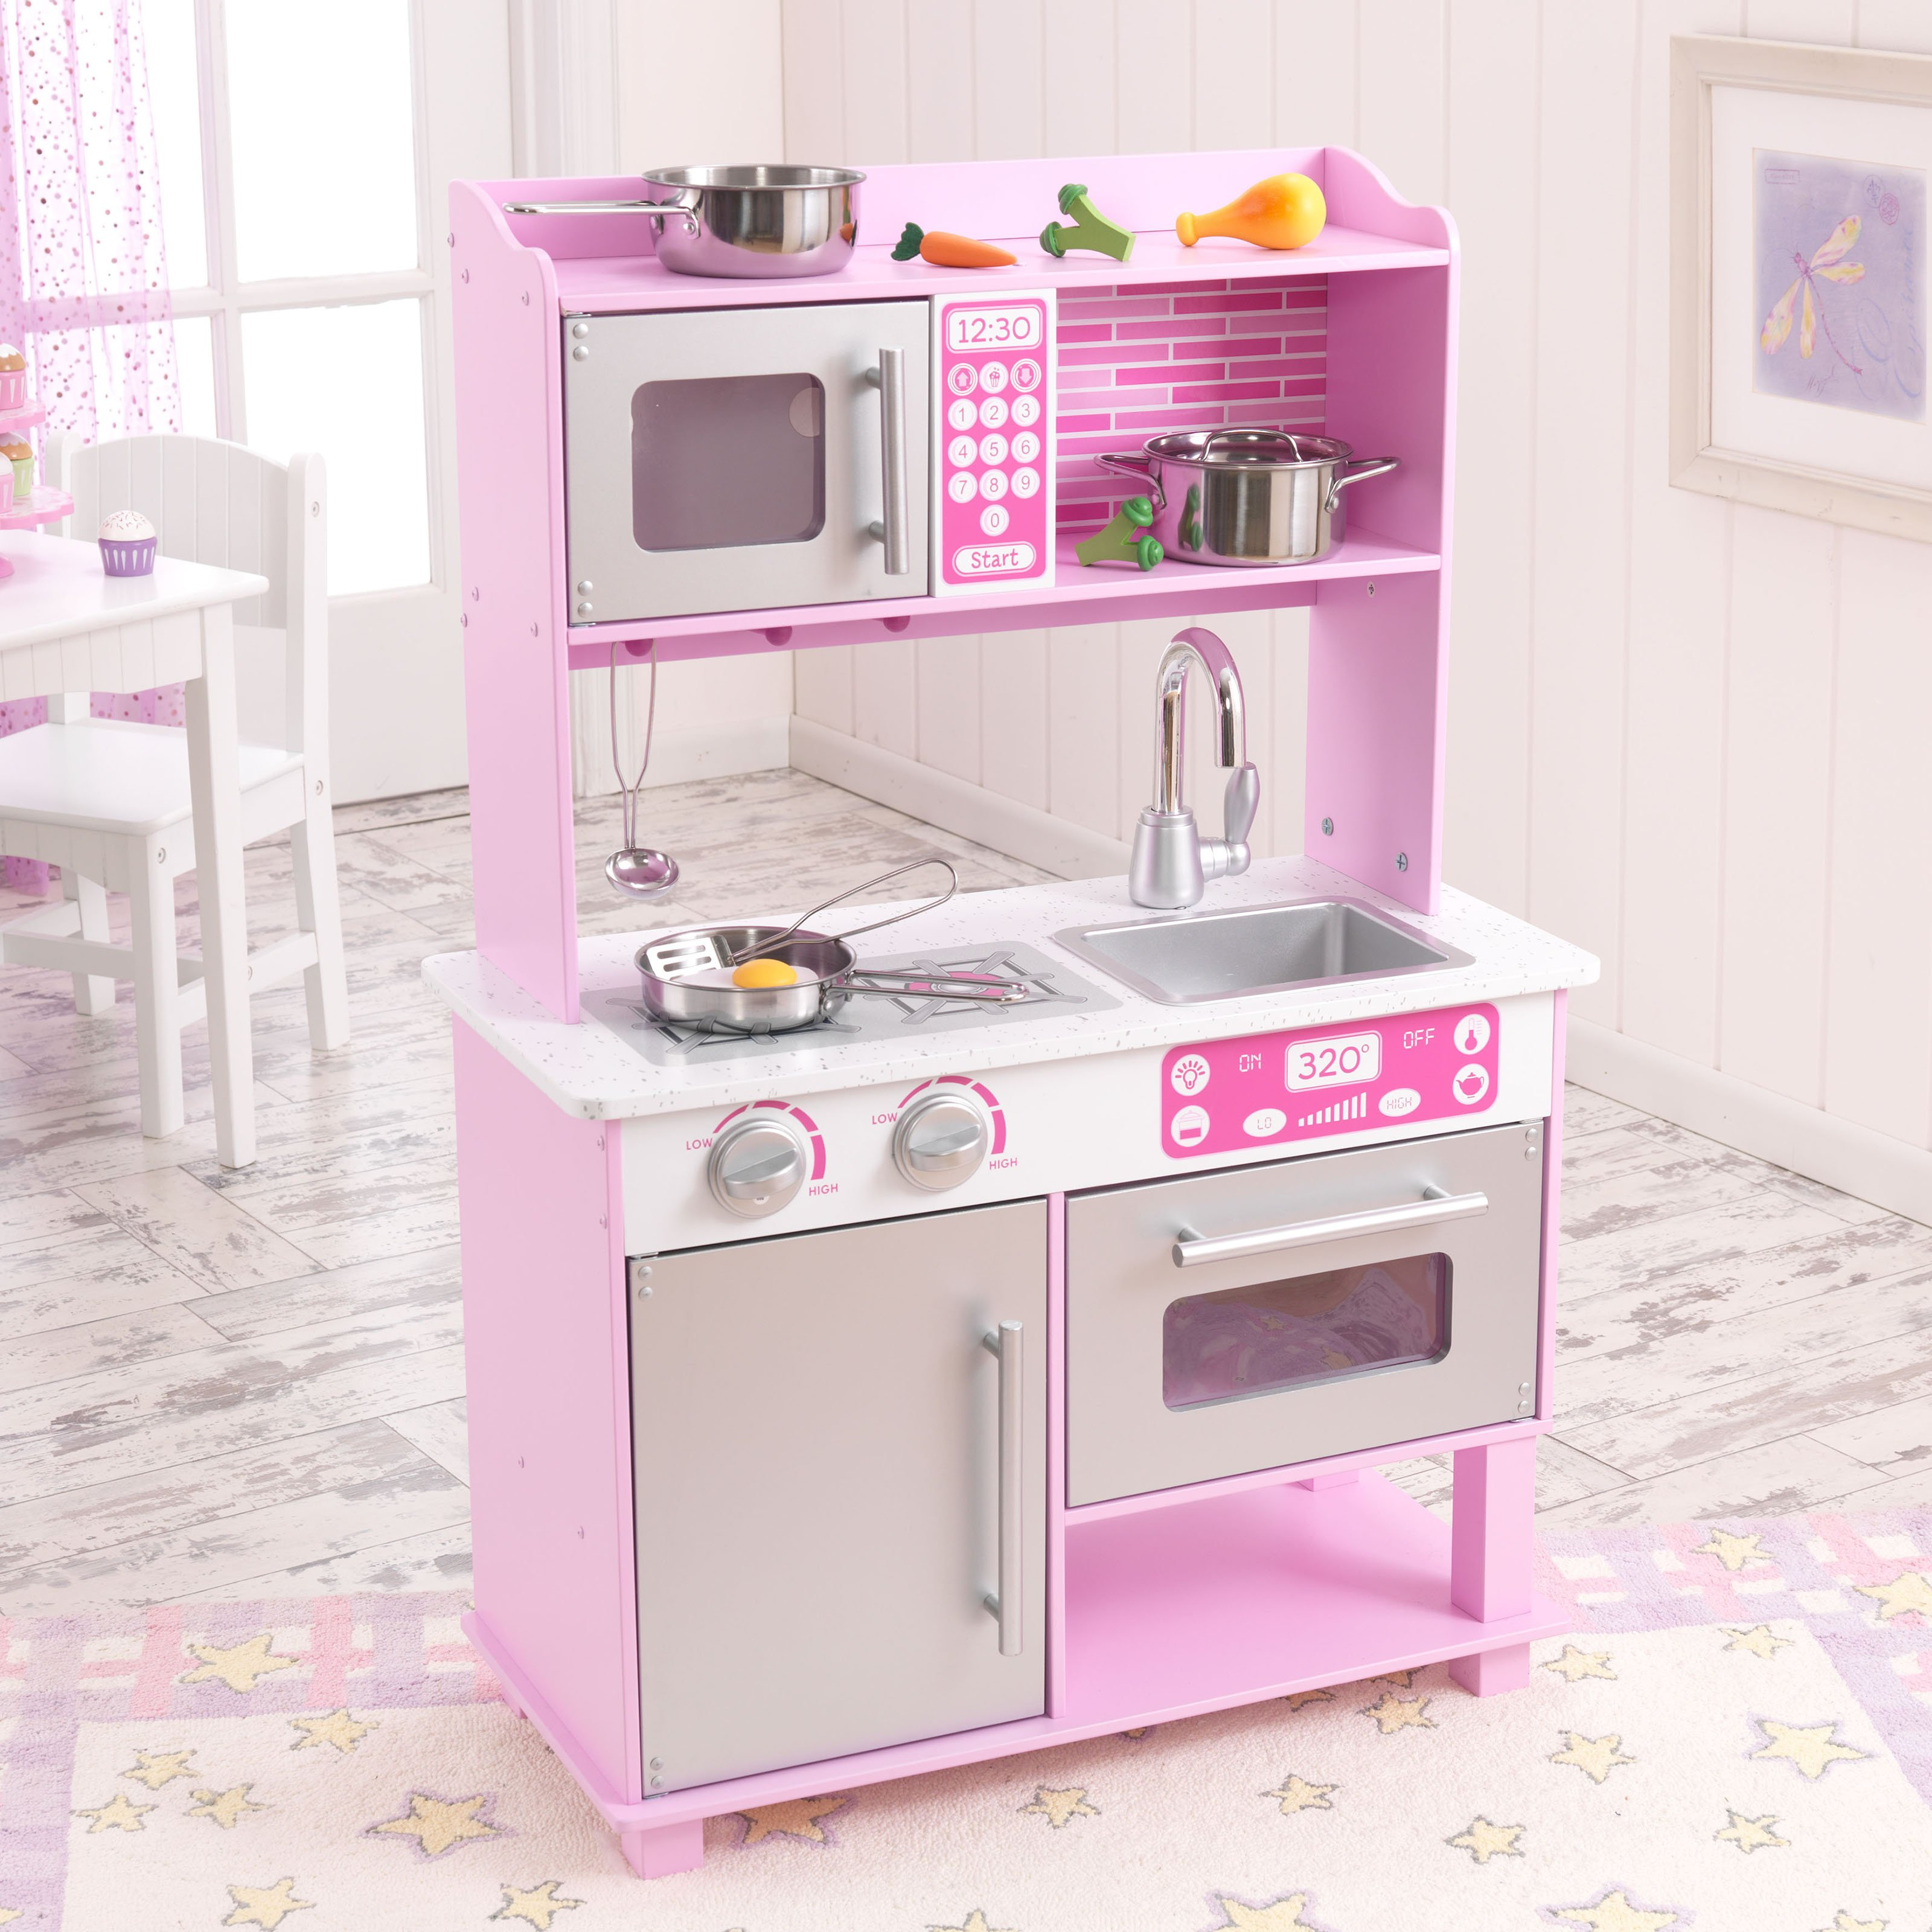 Play Kitchen Kidkraft Pink Toddler Play Kitchen With Metal Accessory Set